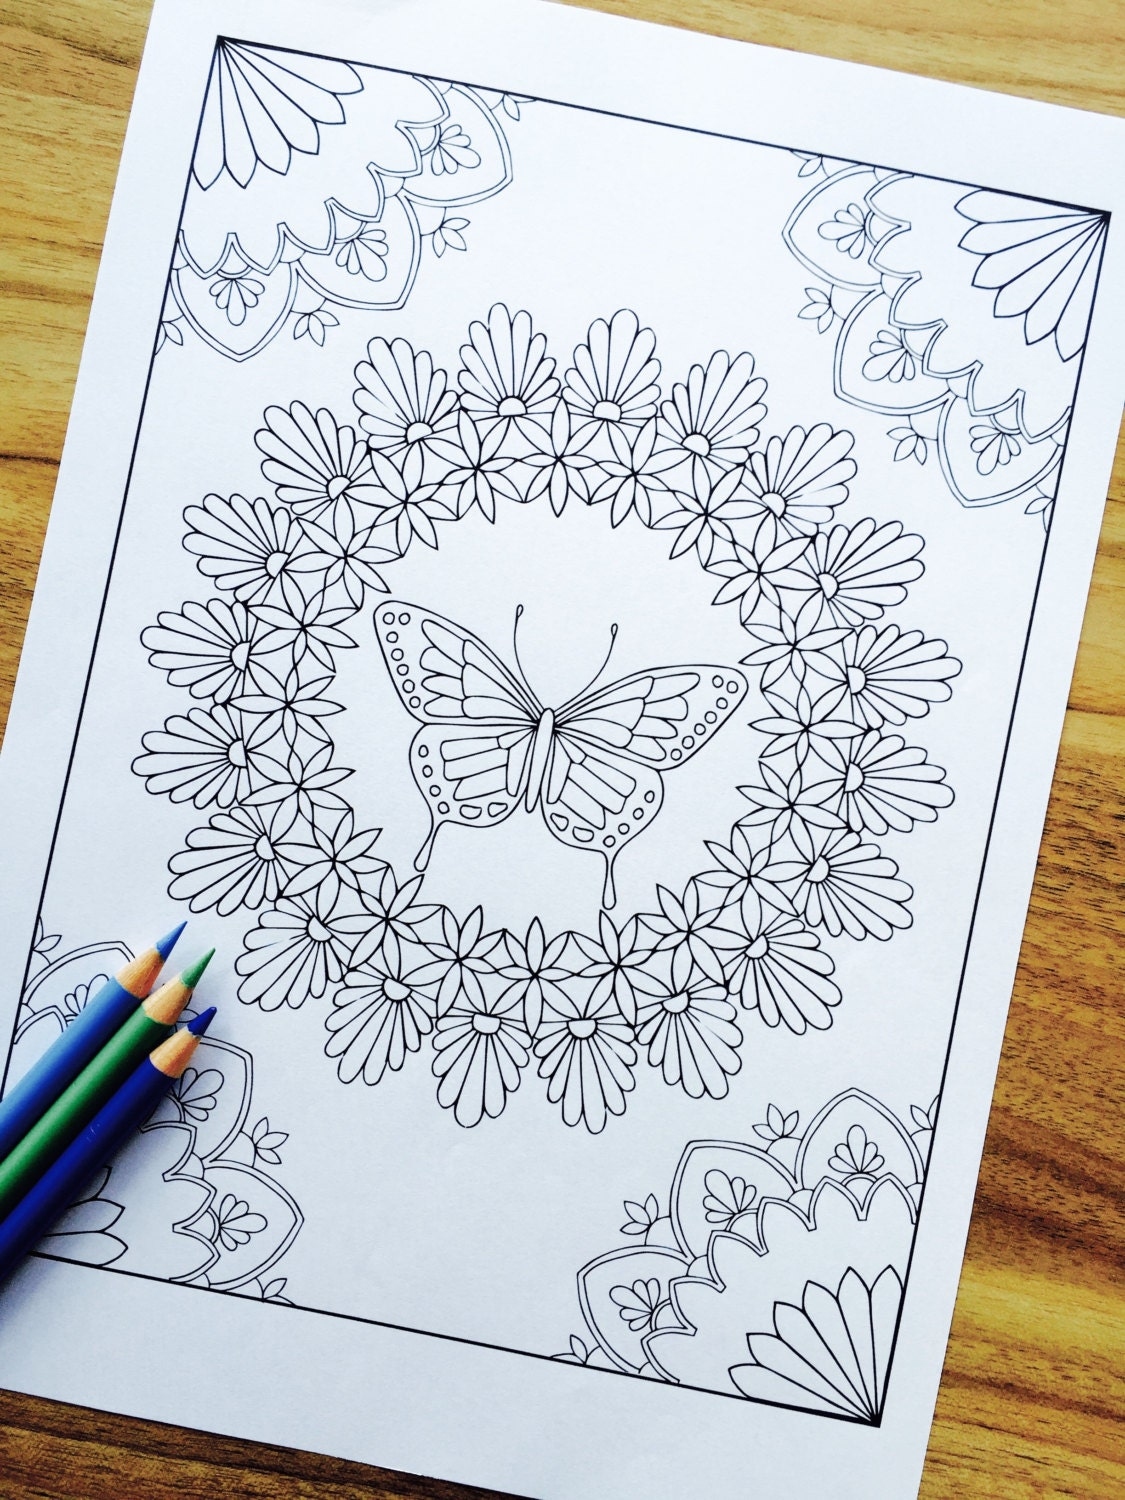 Butterly Series Print 3 Hand Drawn Adult Coloring Page Print   Etsy